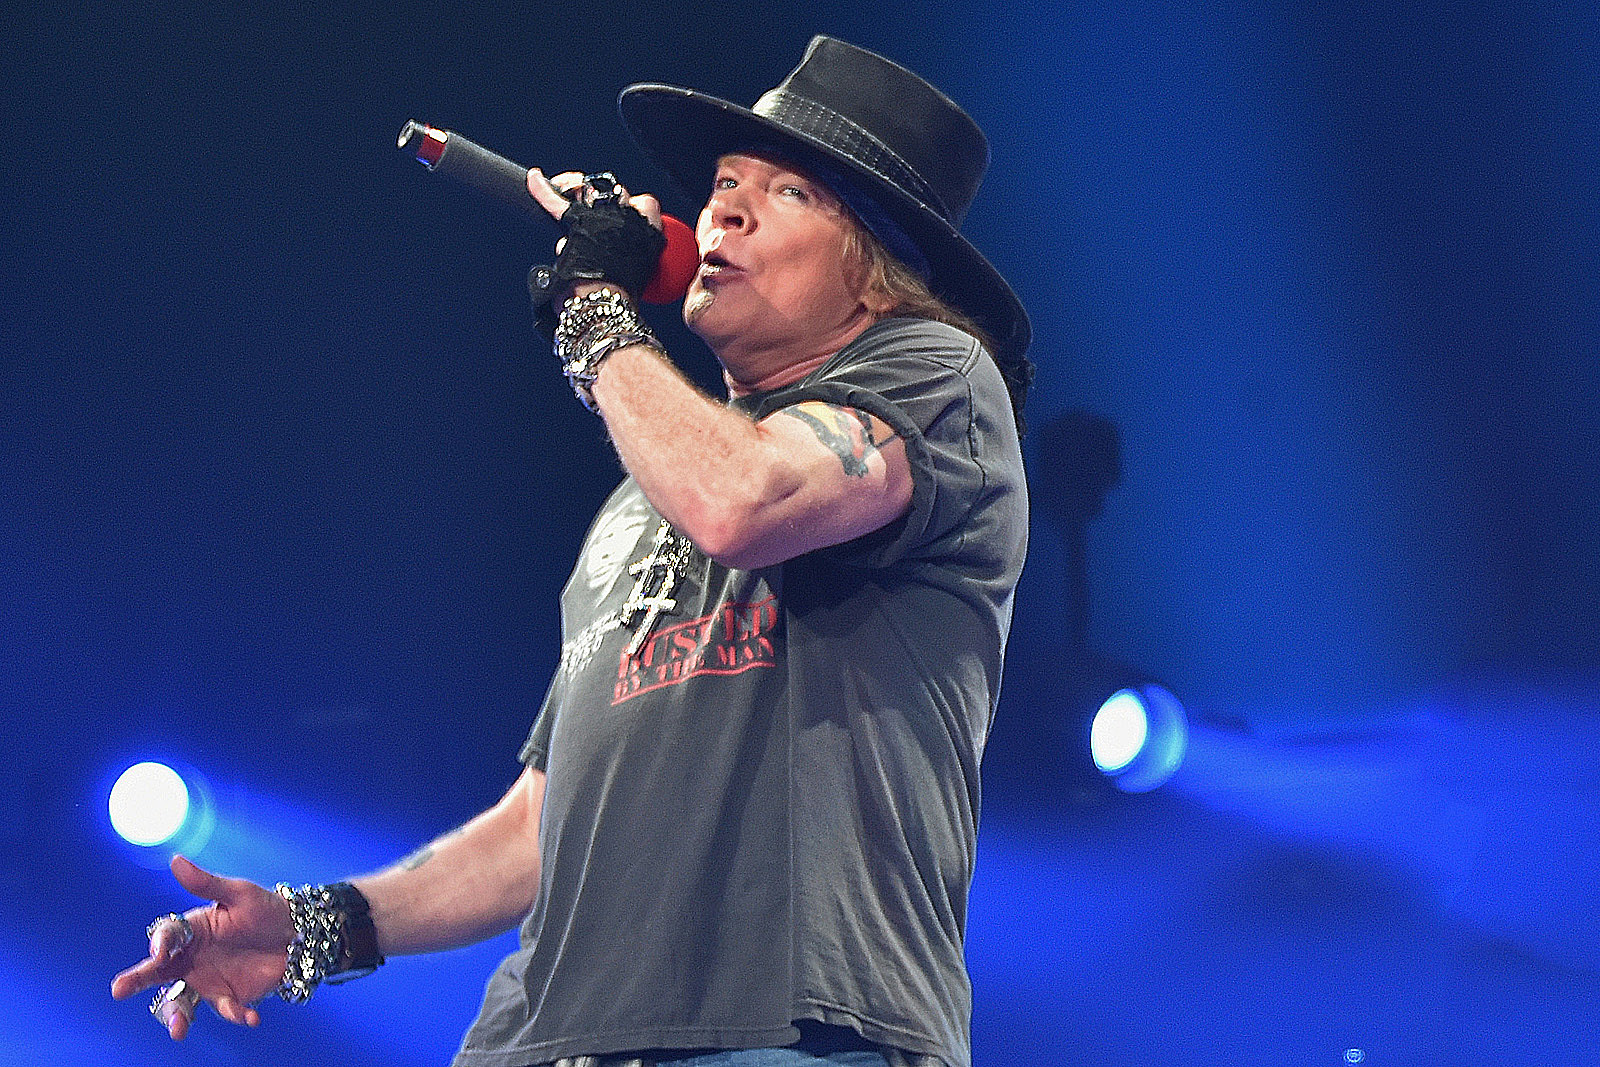 Axl Rose Says 'You Never Know' About New Guns N' Roses Music